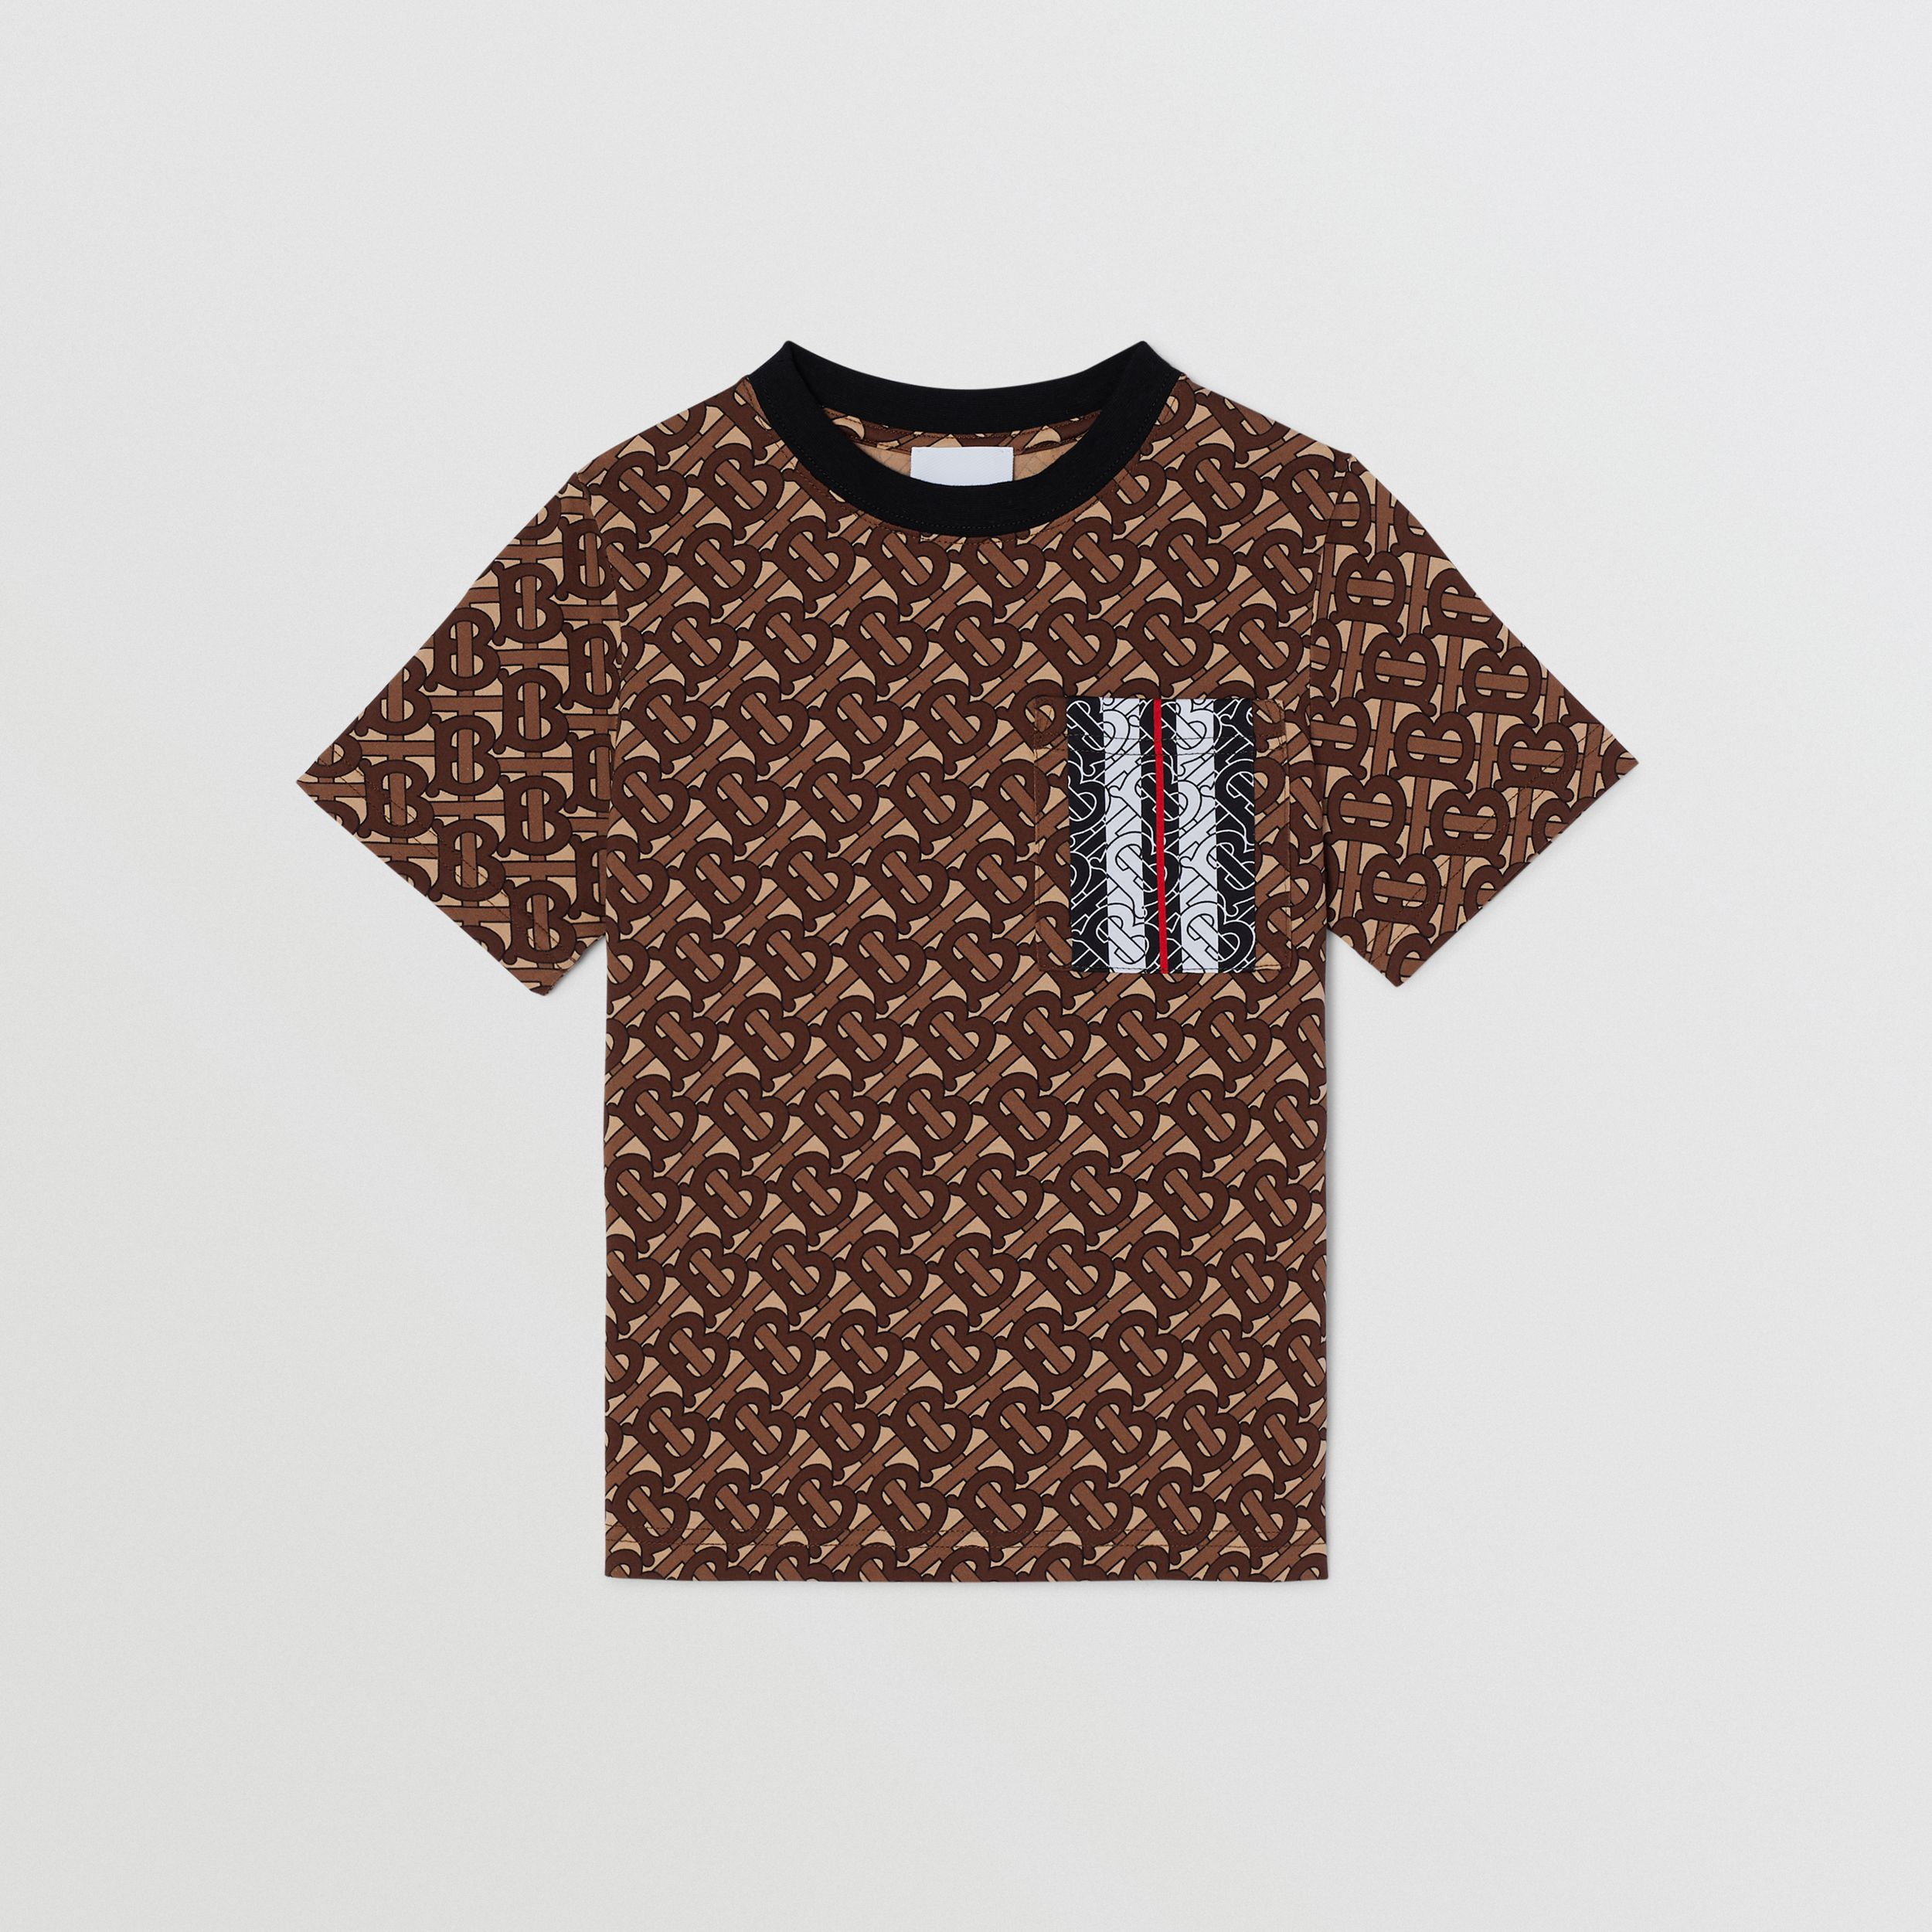 Monogram Stripe Print Cotton T-shirt in Bridle Brown | Burberry United Kingdom - 1